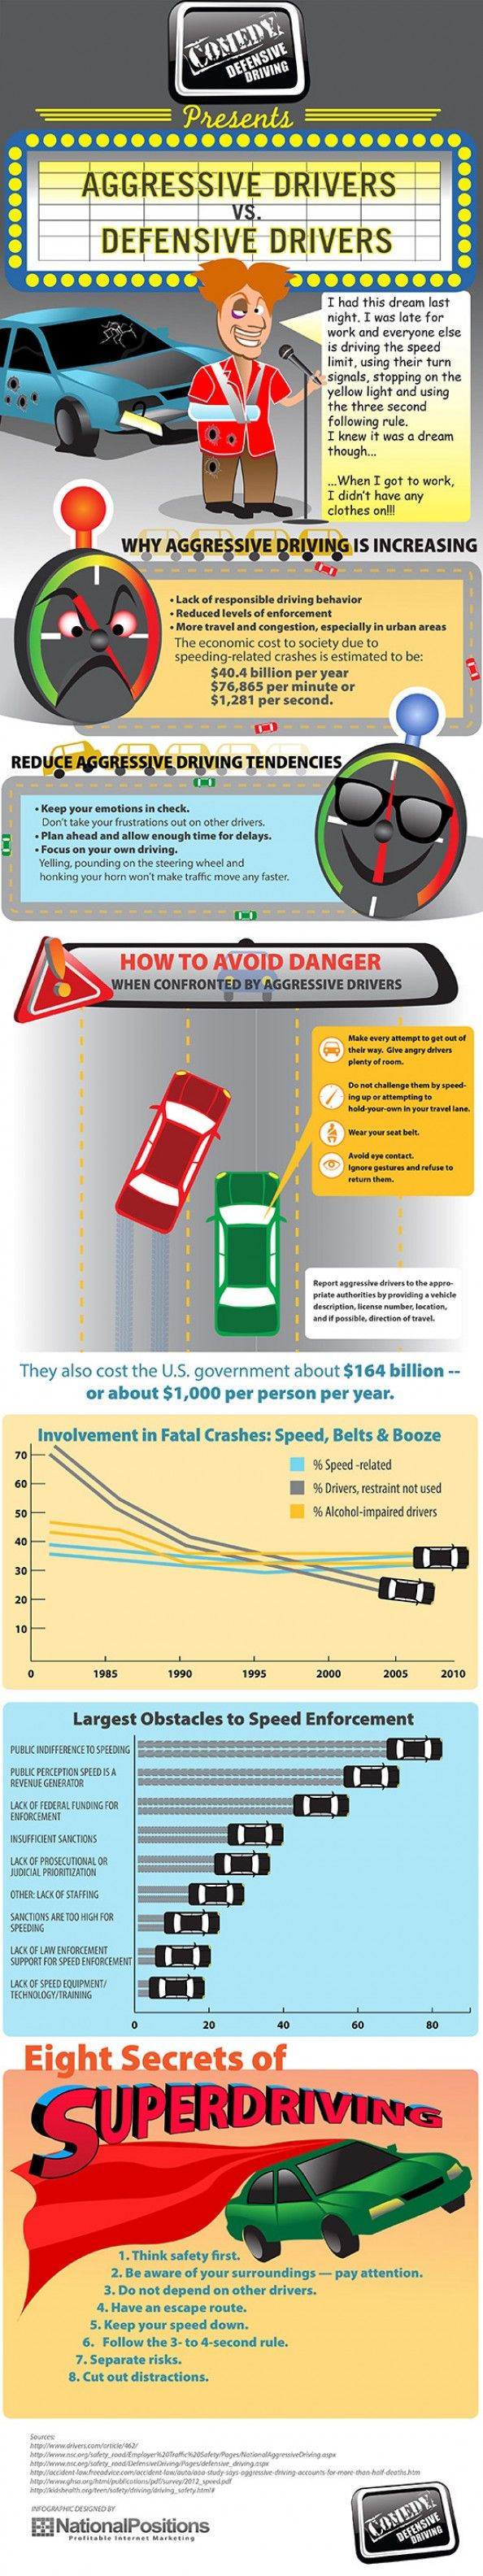 Aggressive Driving vs. Defensive Driving Infographic